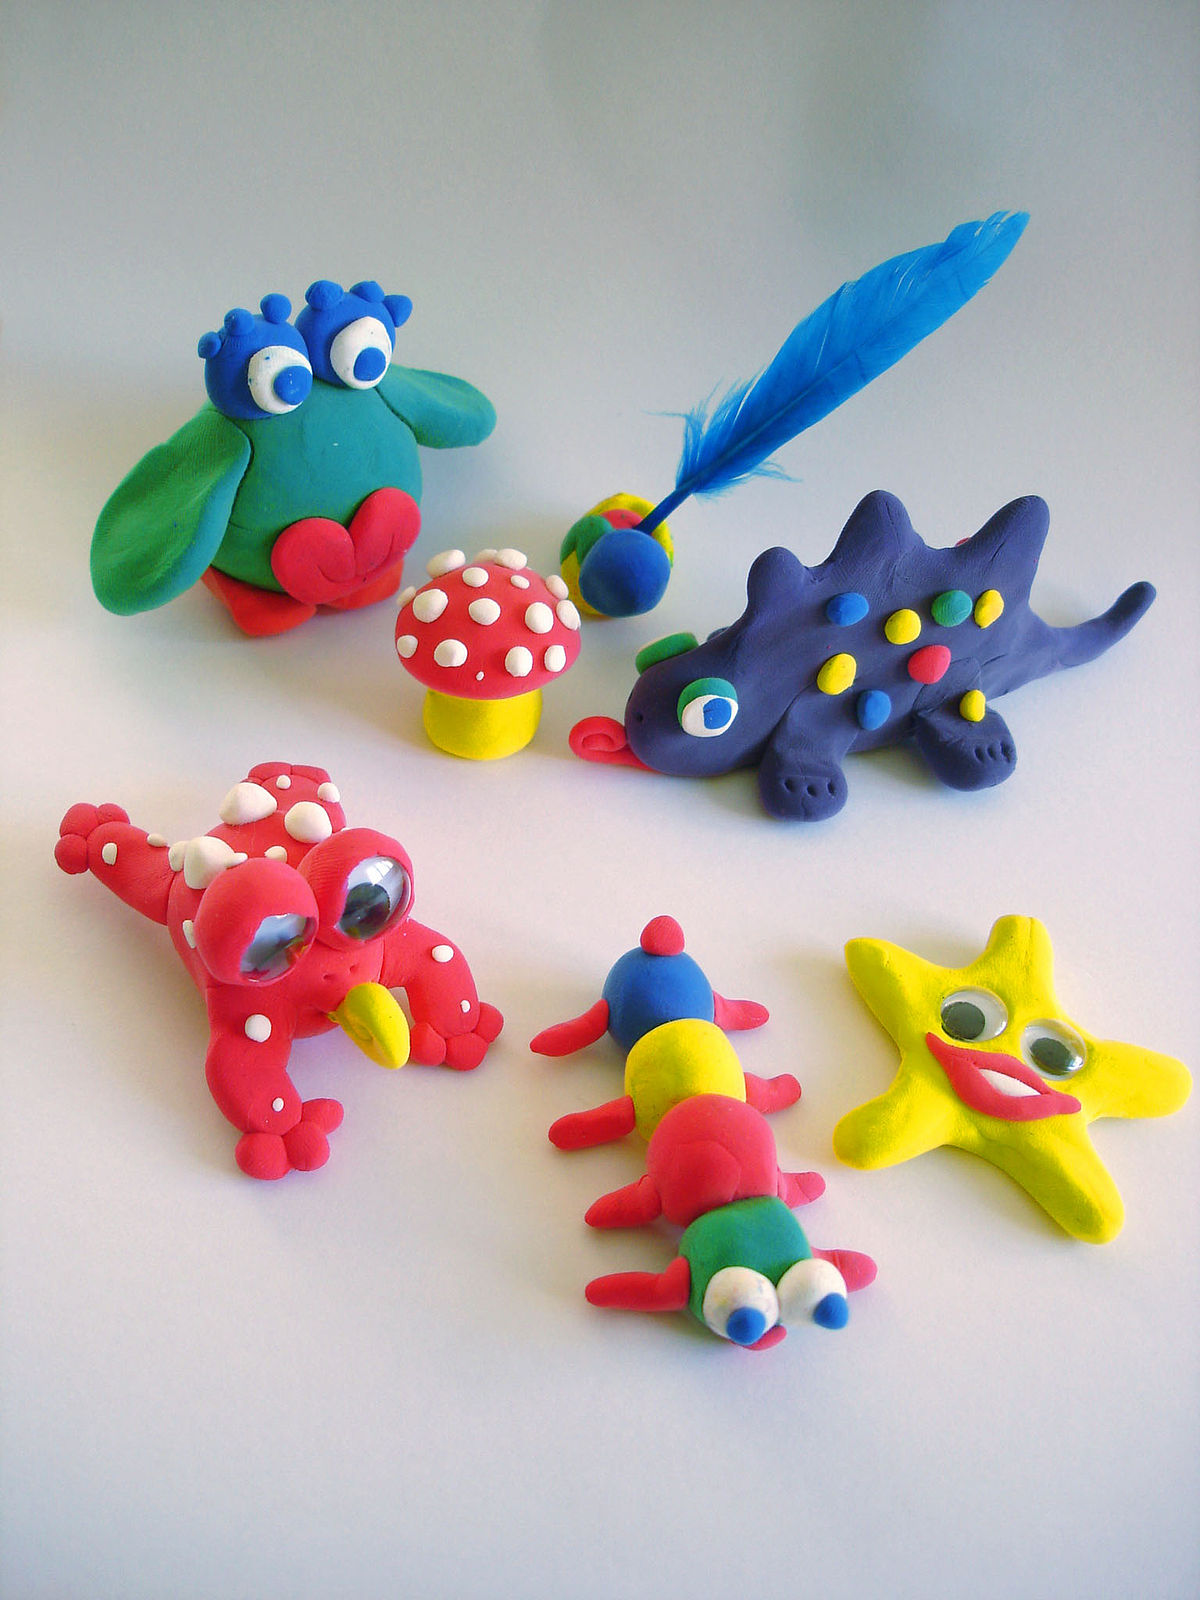 Play-Doh - Wikipedia, la enciclopedia libre